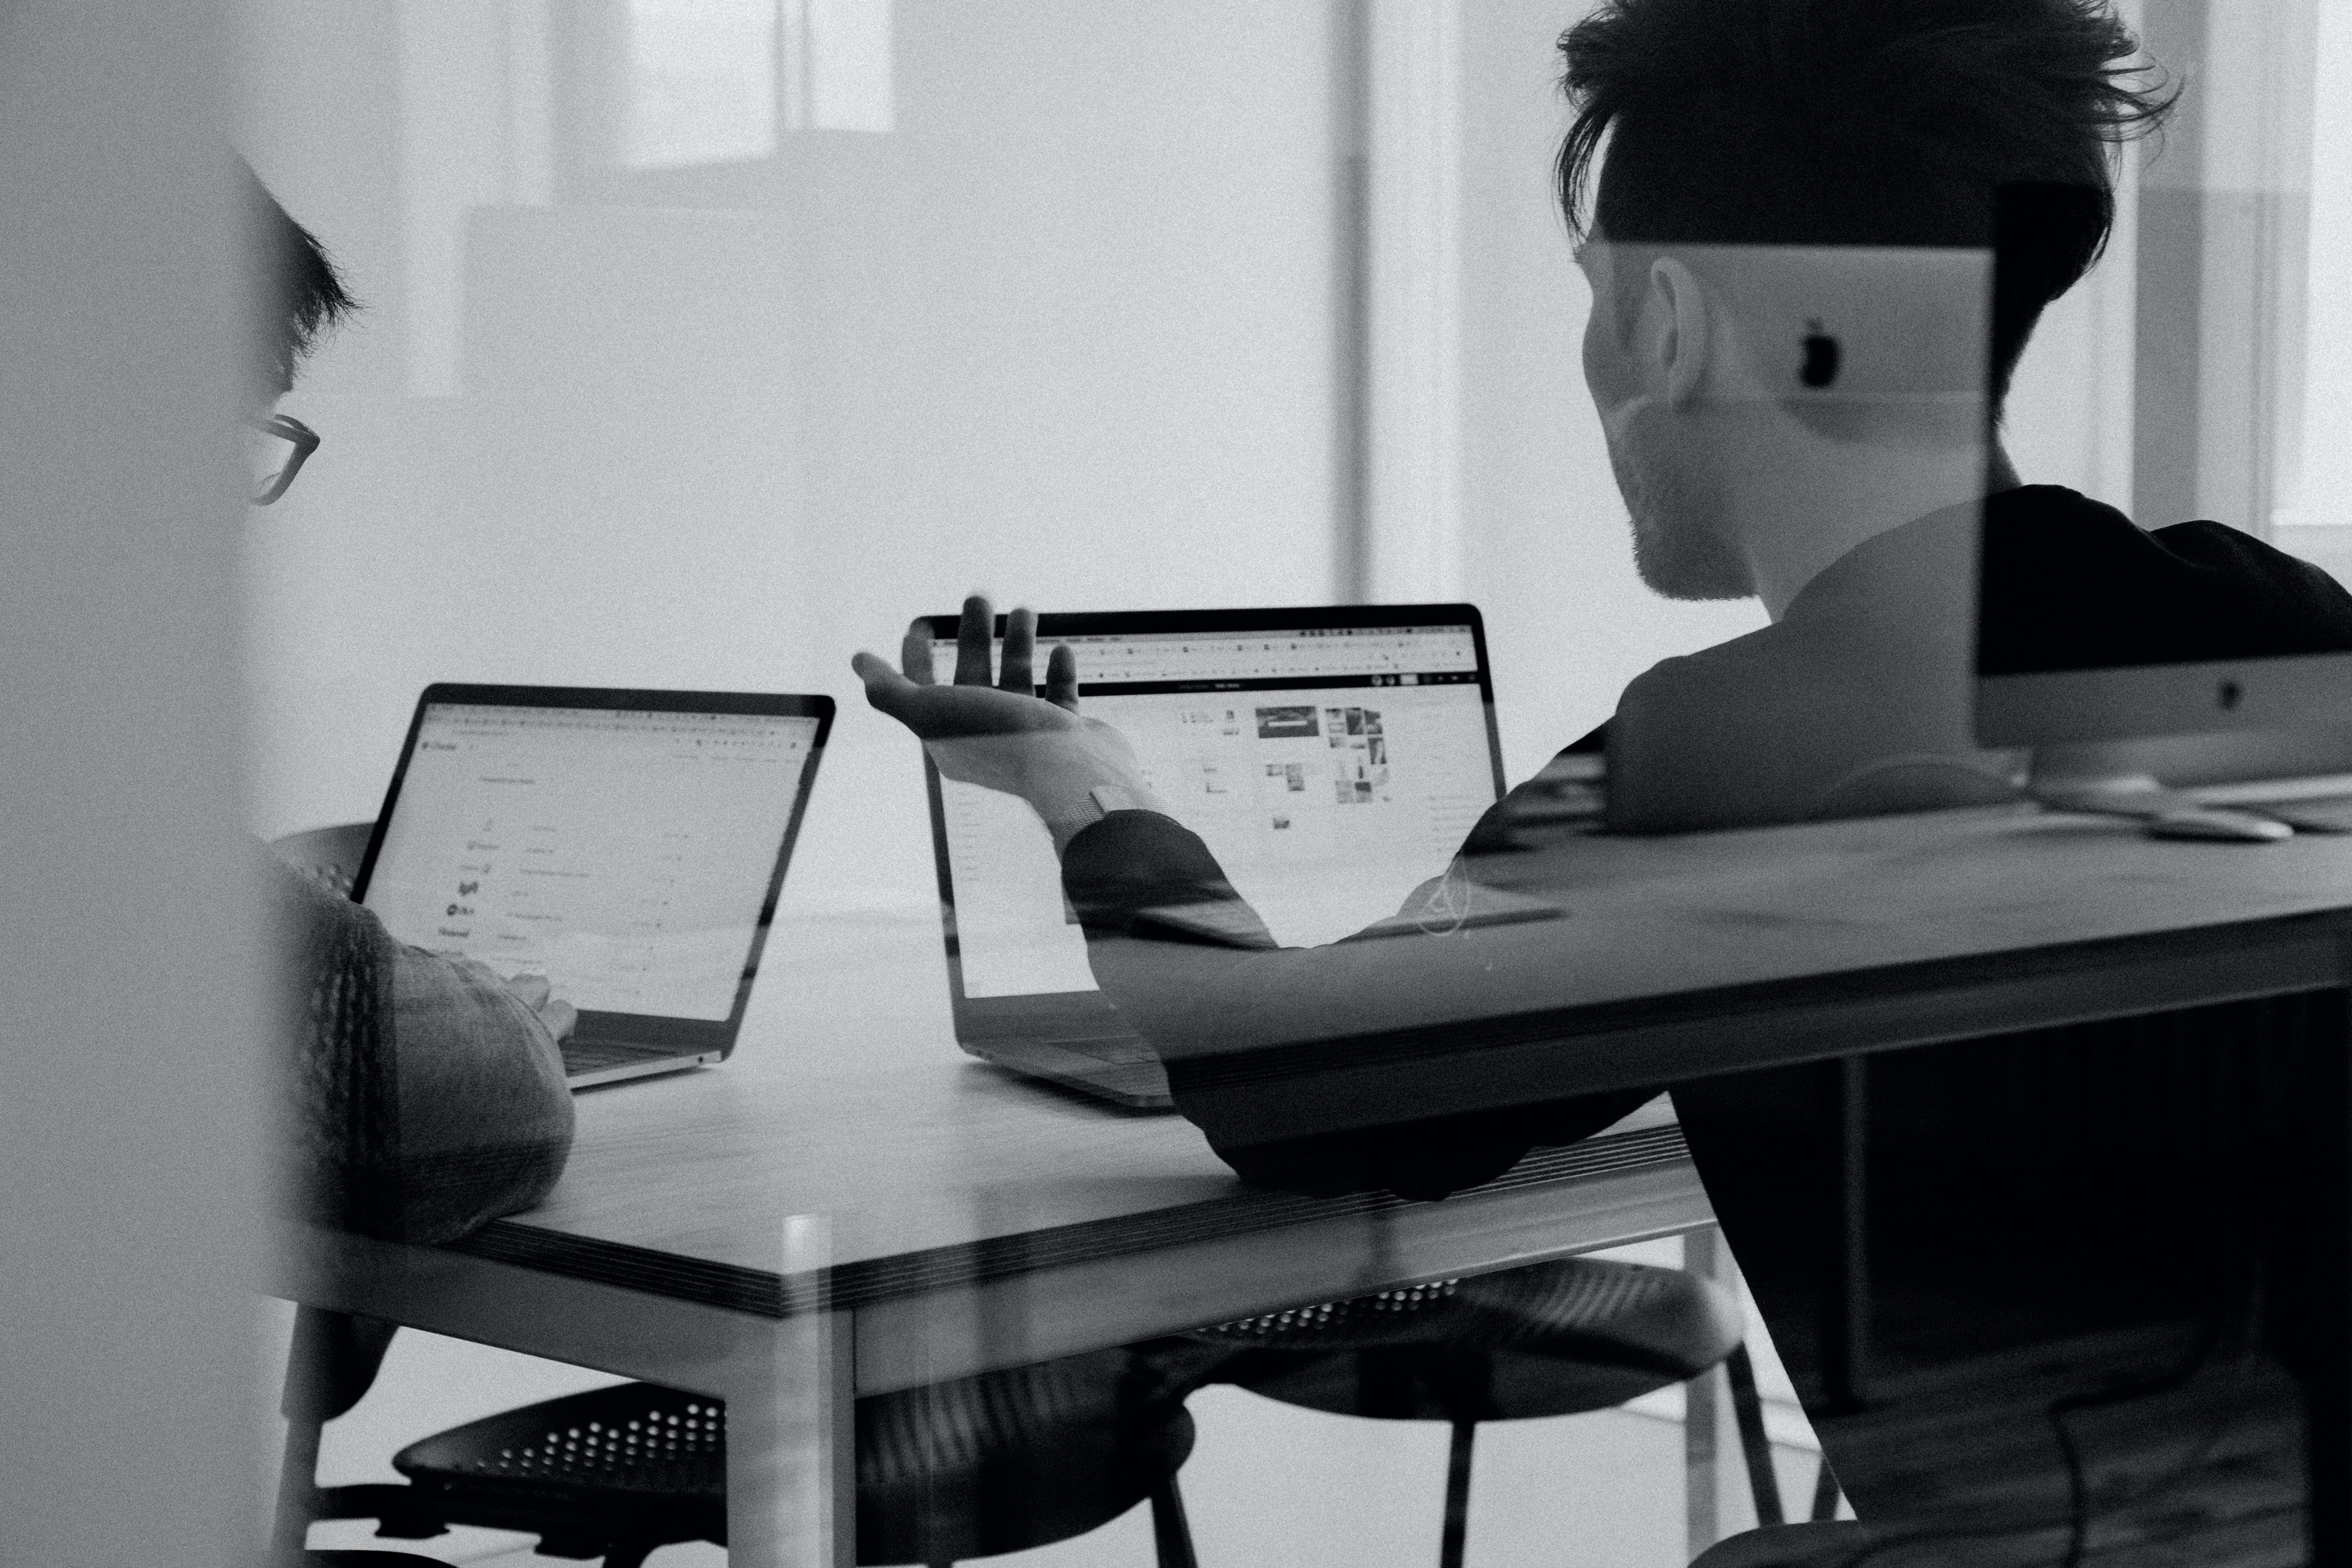 Two men conversing while working on laptops.